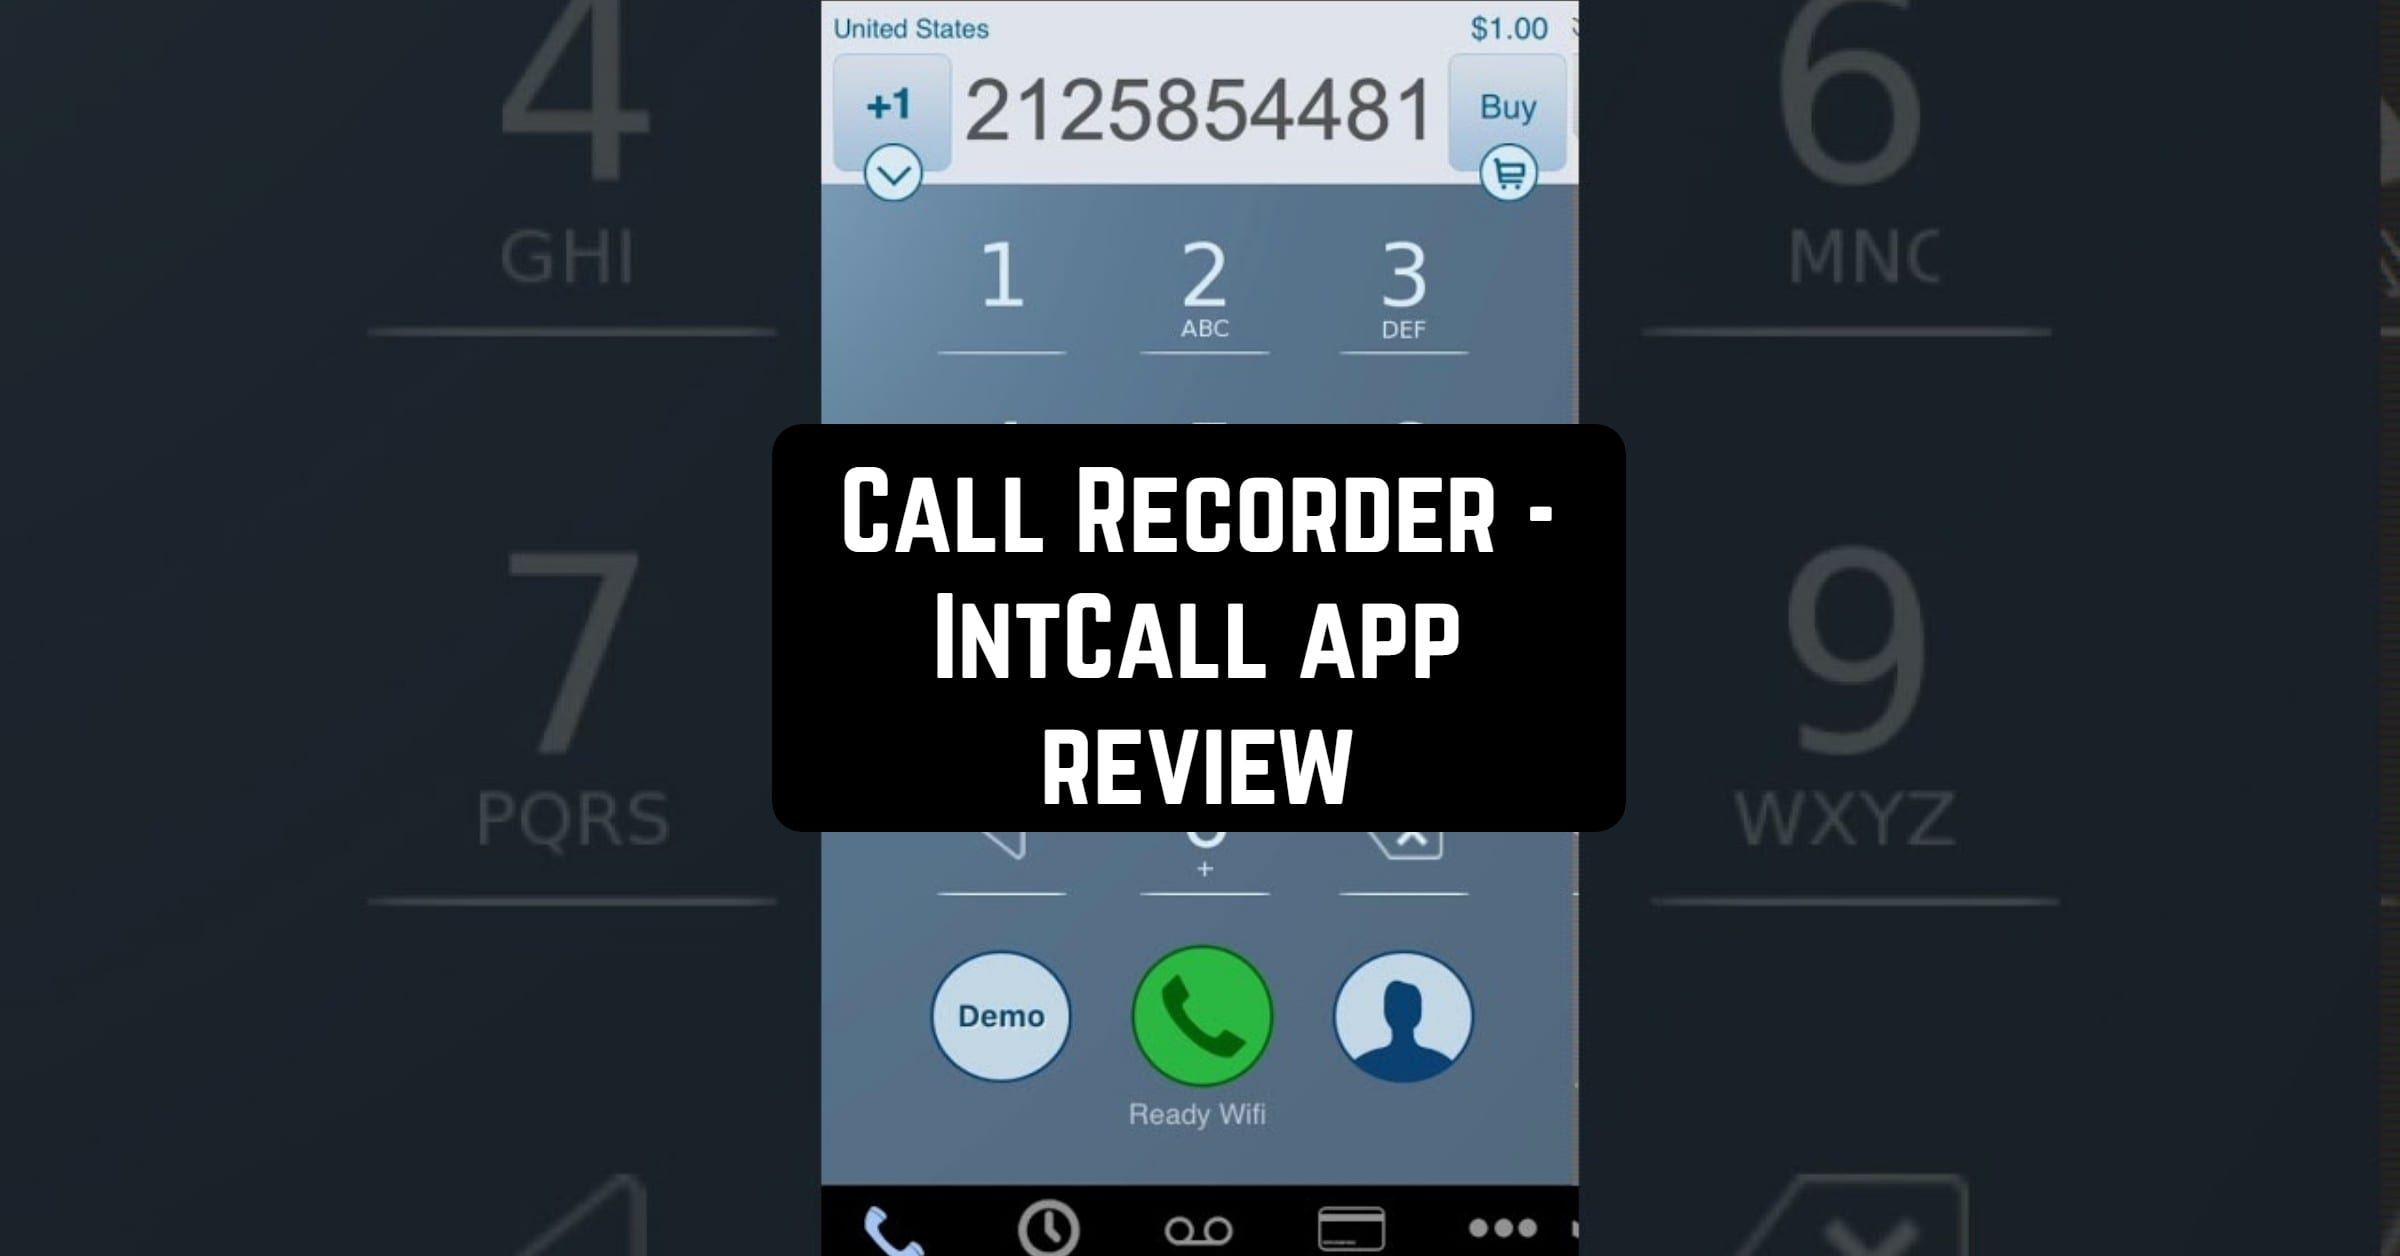 https://www.telestarint.net/call-recorder